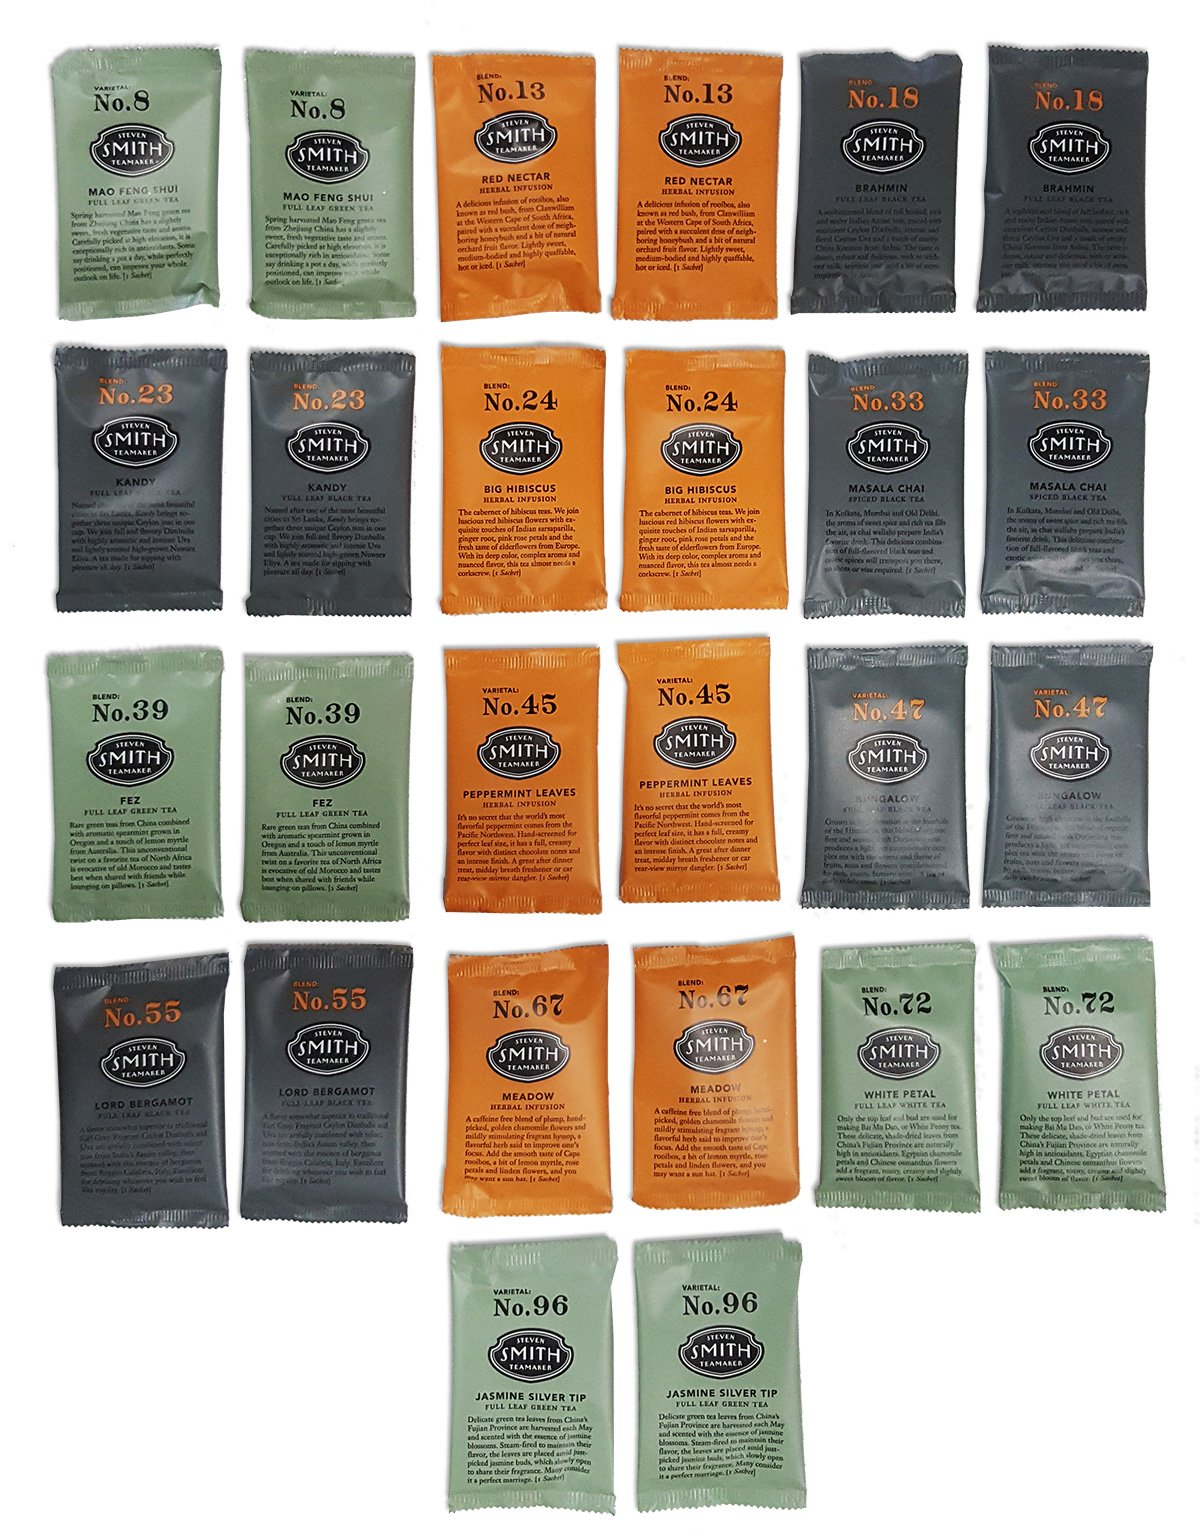 Steven Smith Teamaker, Ultimate Tea Sampler Pack, 2 Flavors of each (26 ct.)